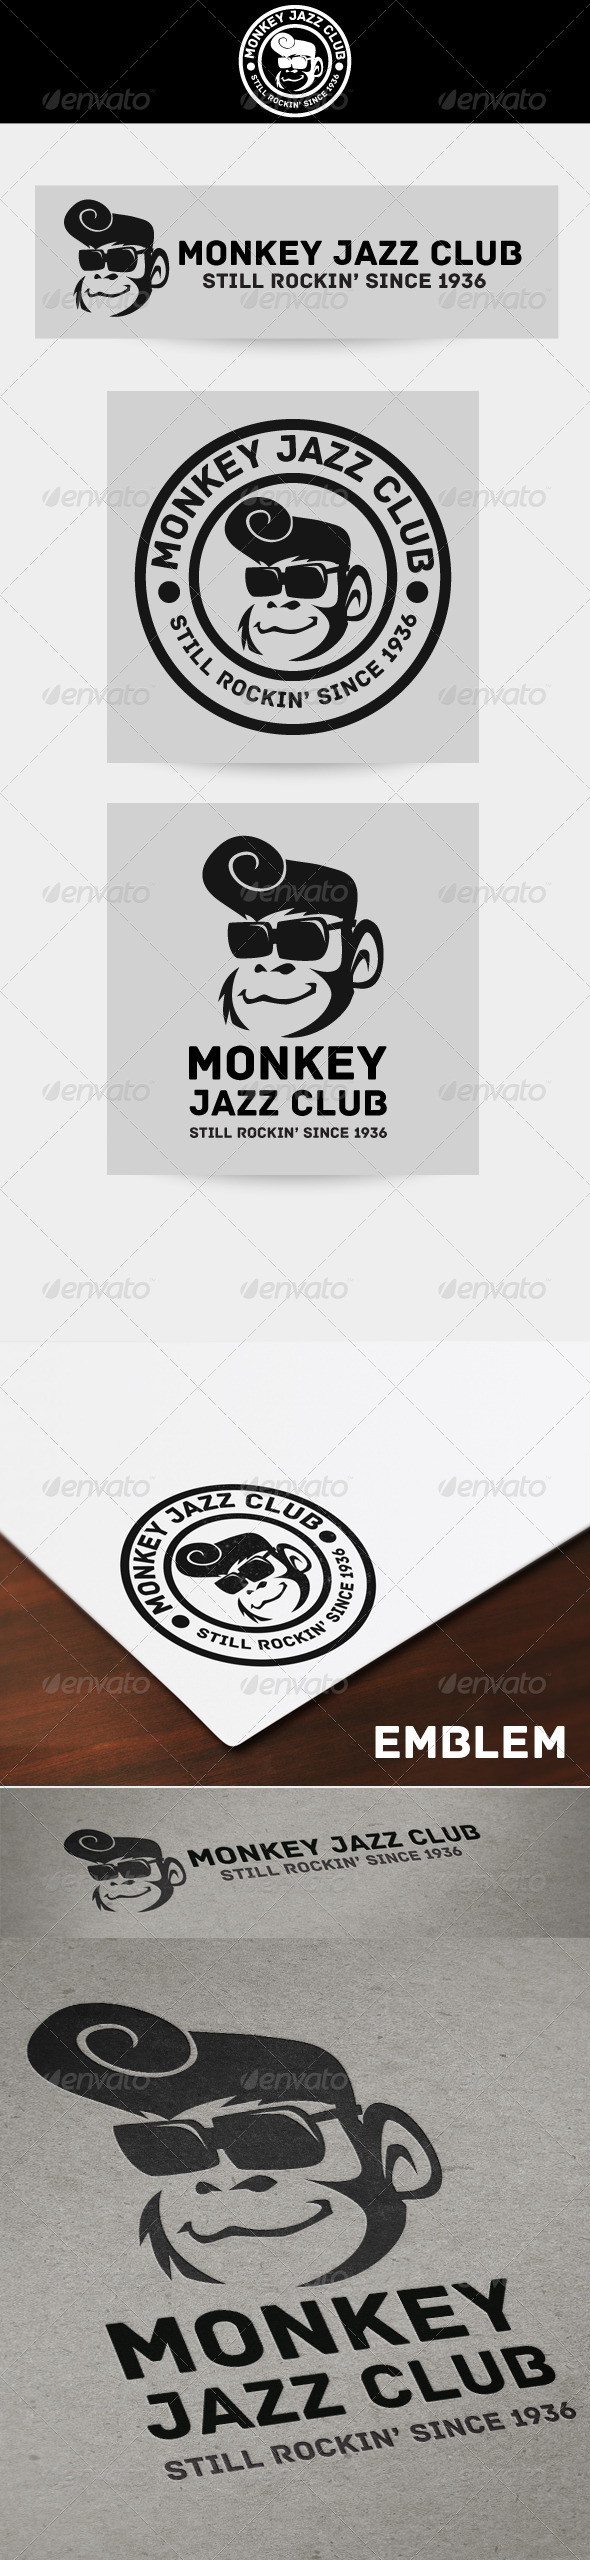 Geek Monkey Logo - Animals Logo Templates